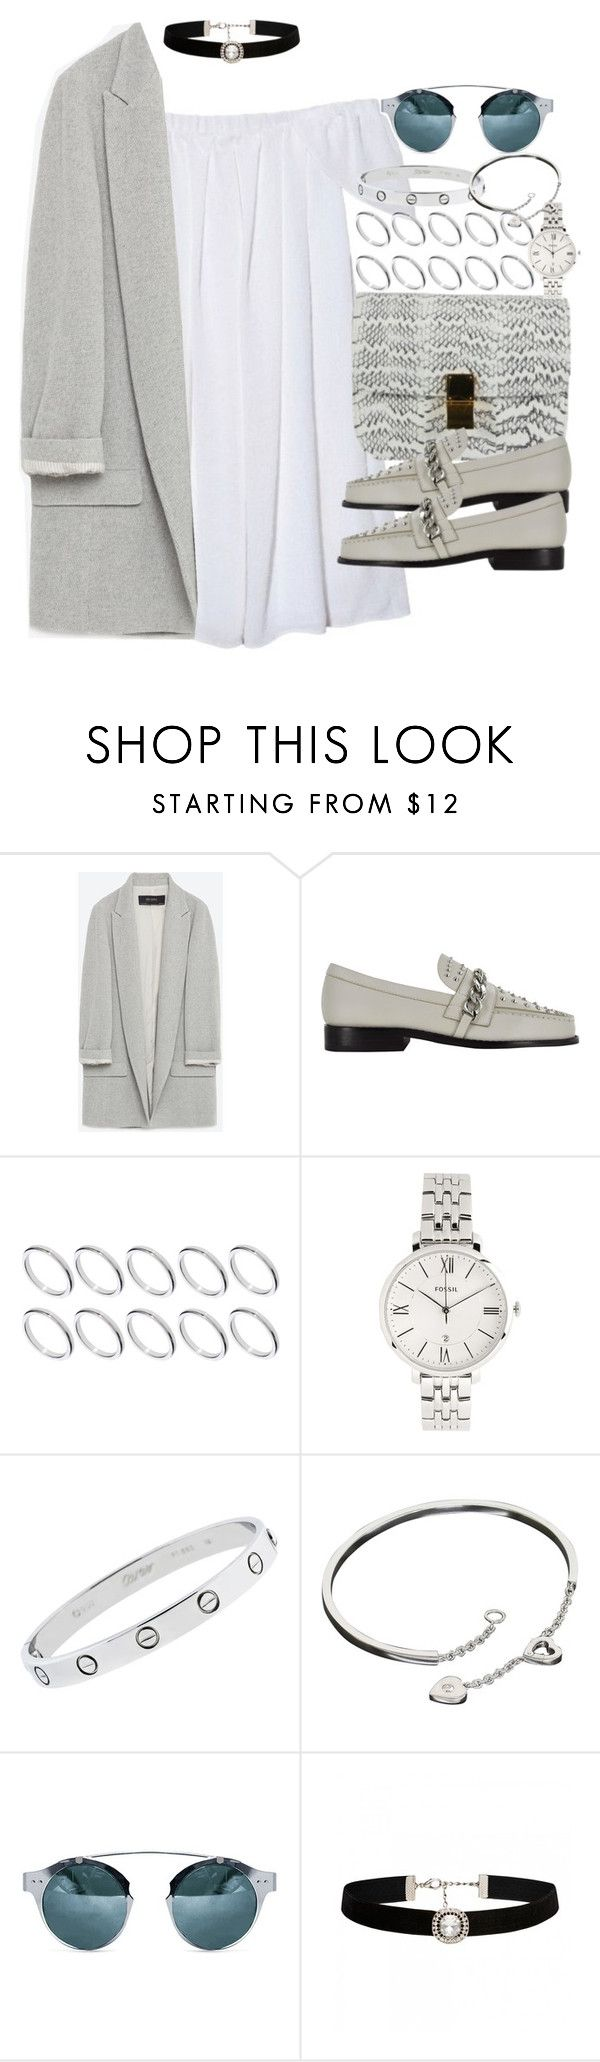 """""""Sin título #3698"""" by hellomissapple on Polyvore featuring moda, Zara, ASOS, FOSSIL, Cartier y Forever New"""